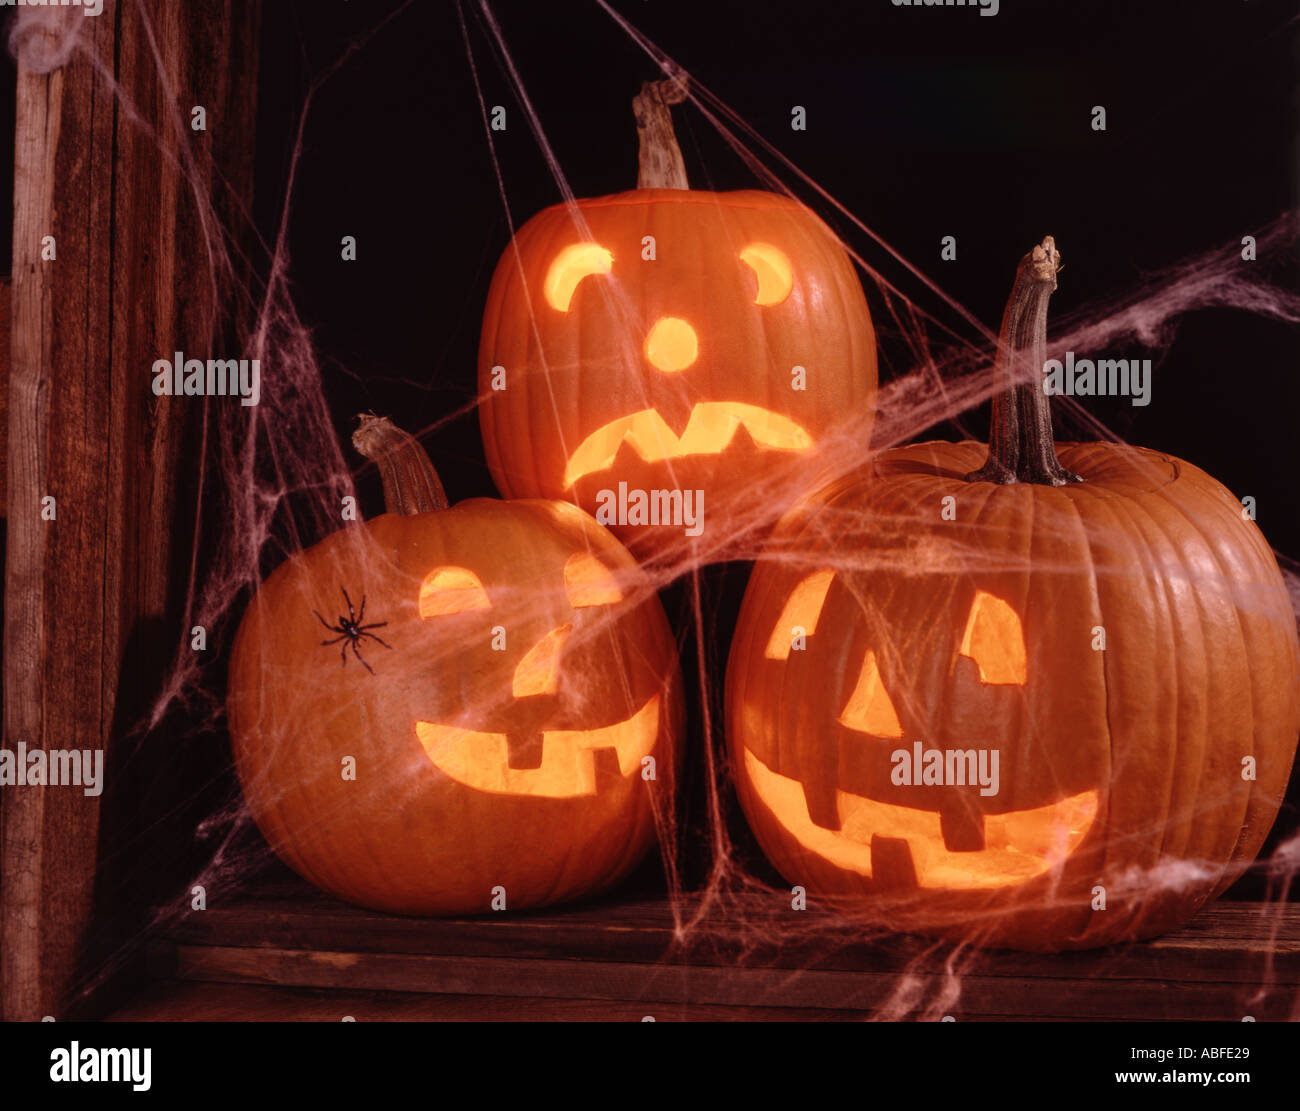 Horizontal of three illuminated Jack O Lanterns with a spider and spider webs - Stock Image